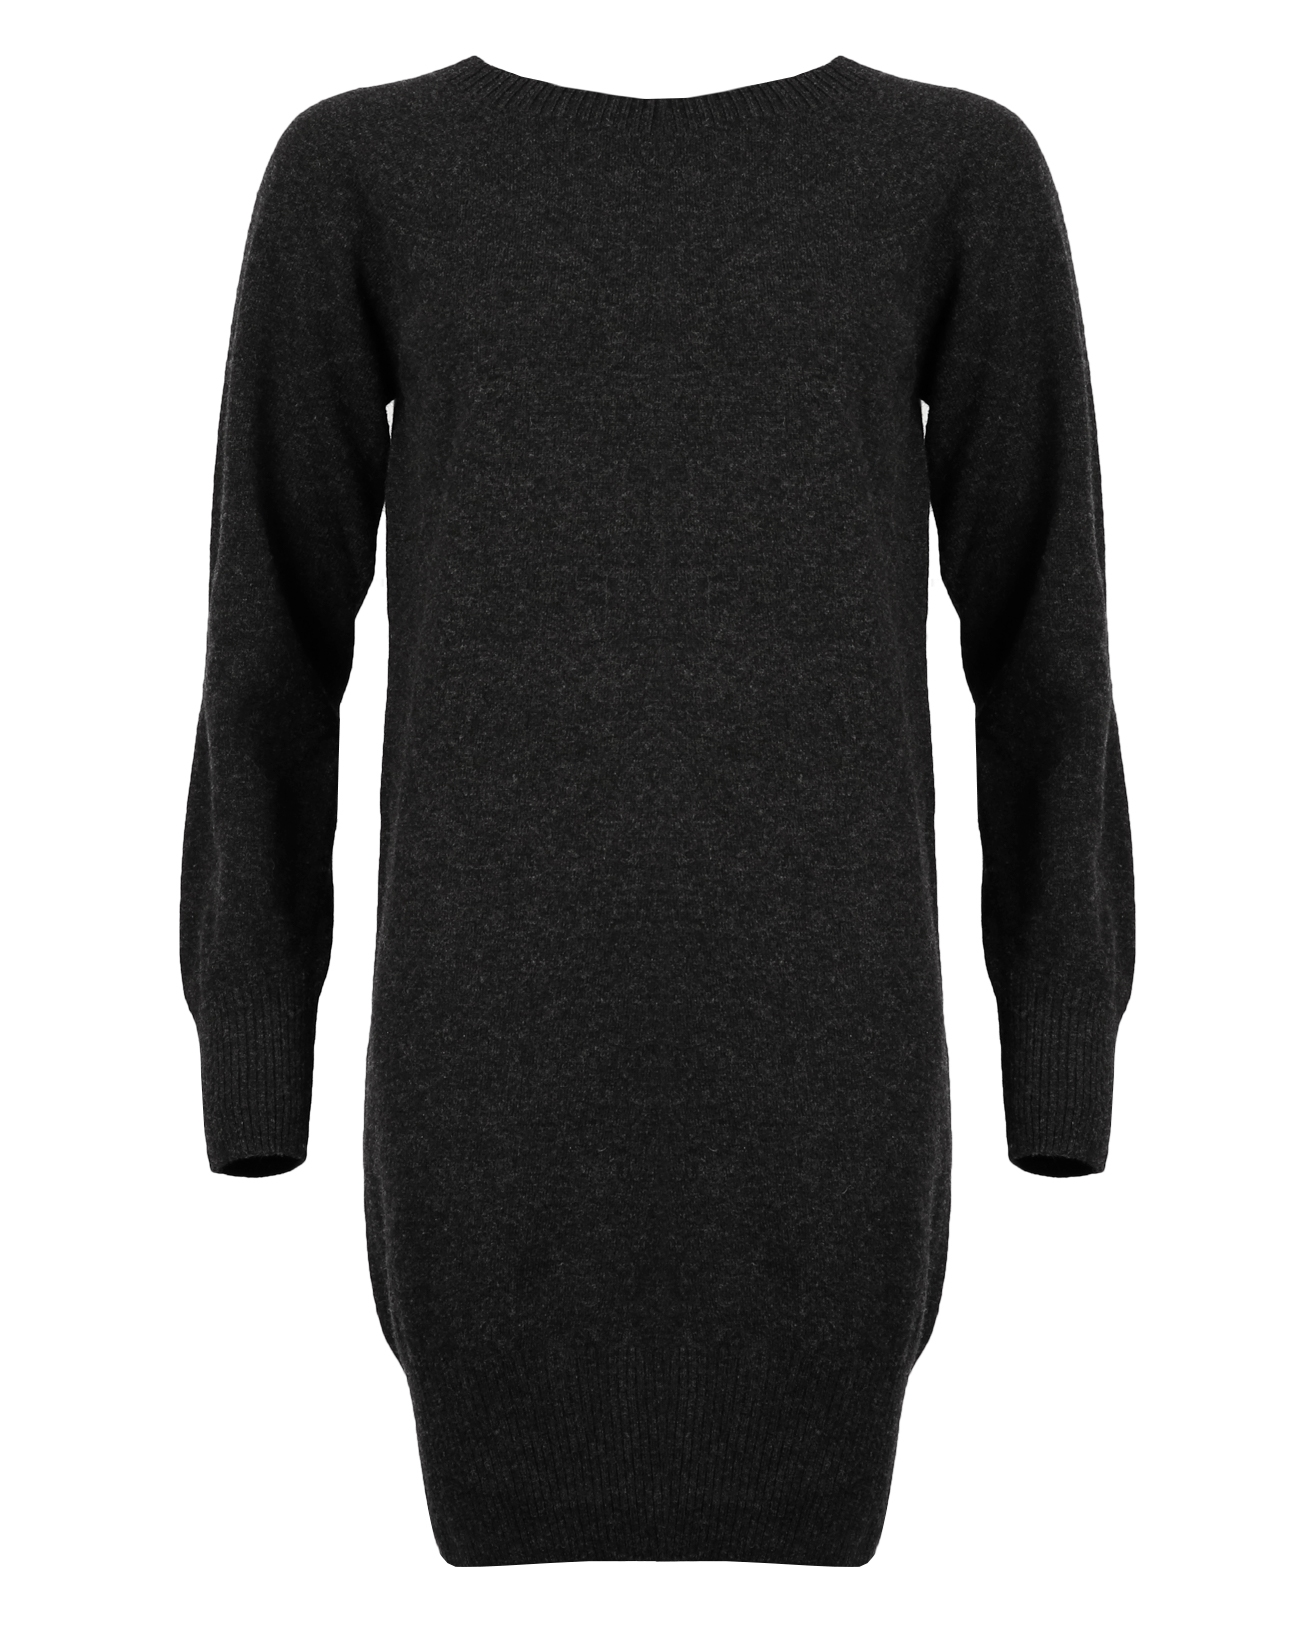 6170_supersoft slouch dress_charcoal_front_aw17.jpg